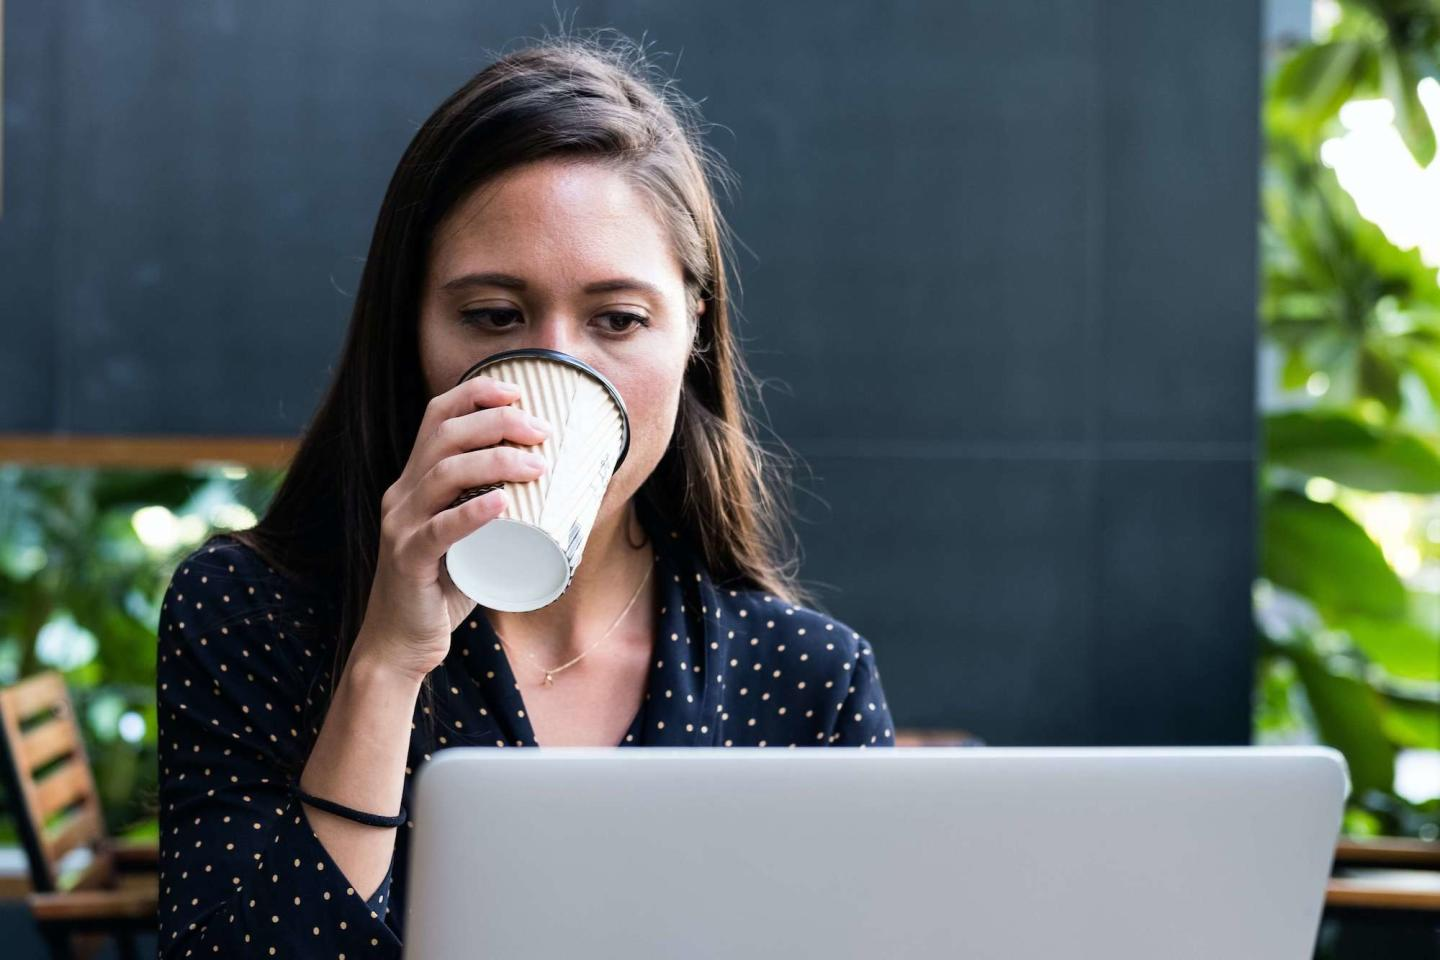 woman drinking coffee while on computer